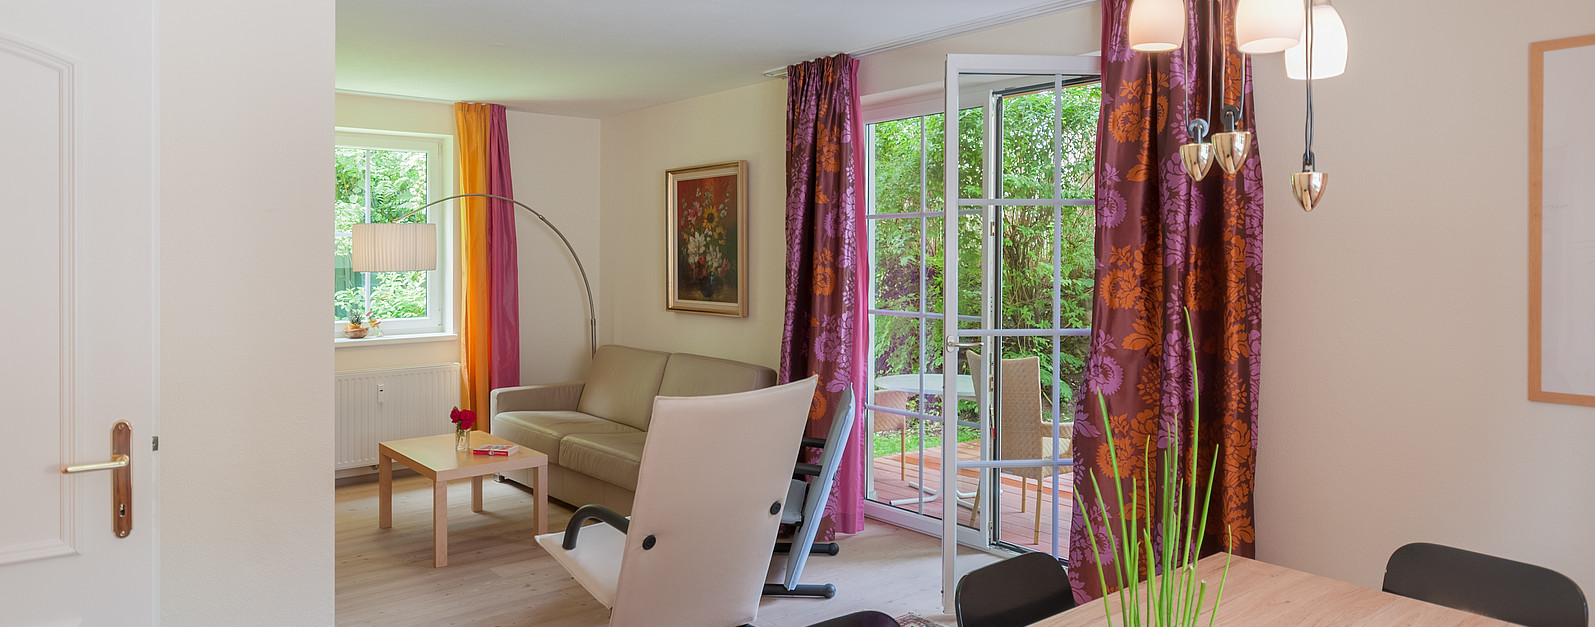 City Apartment | 4* Hotel Alpin, Zell am See